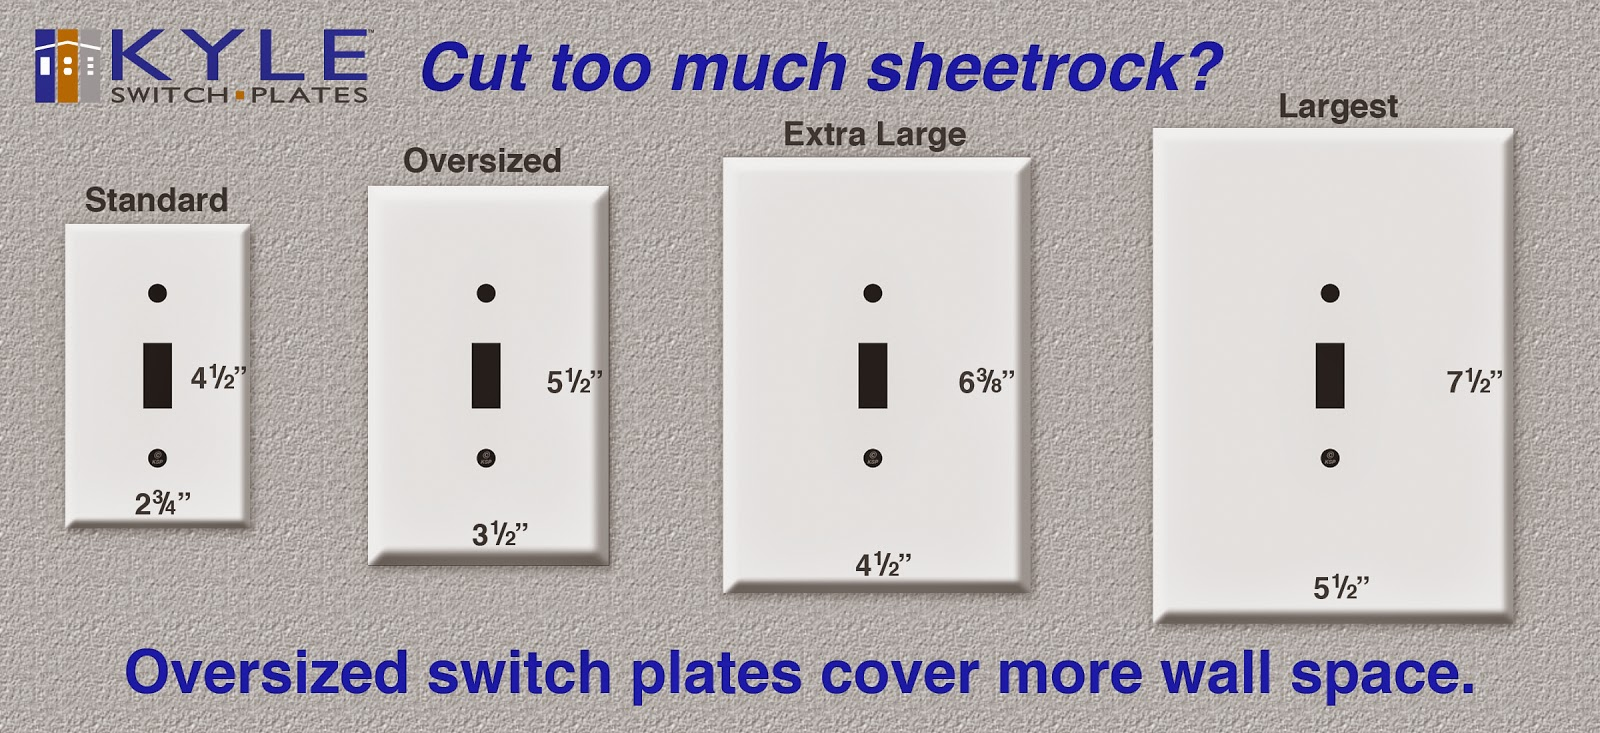 Oversized Switch Plates Amazing Kyle Switch Plates May 2014 Decorating Design